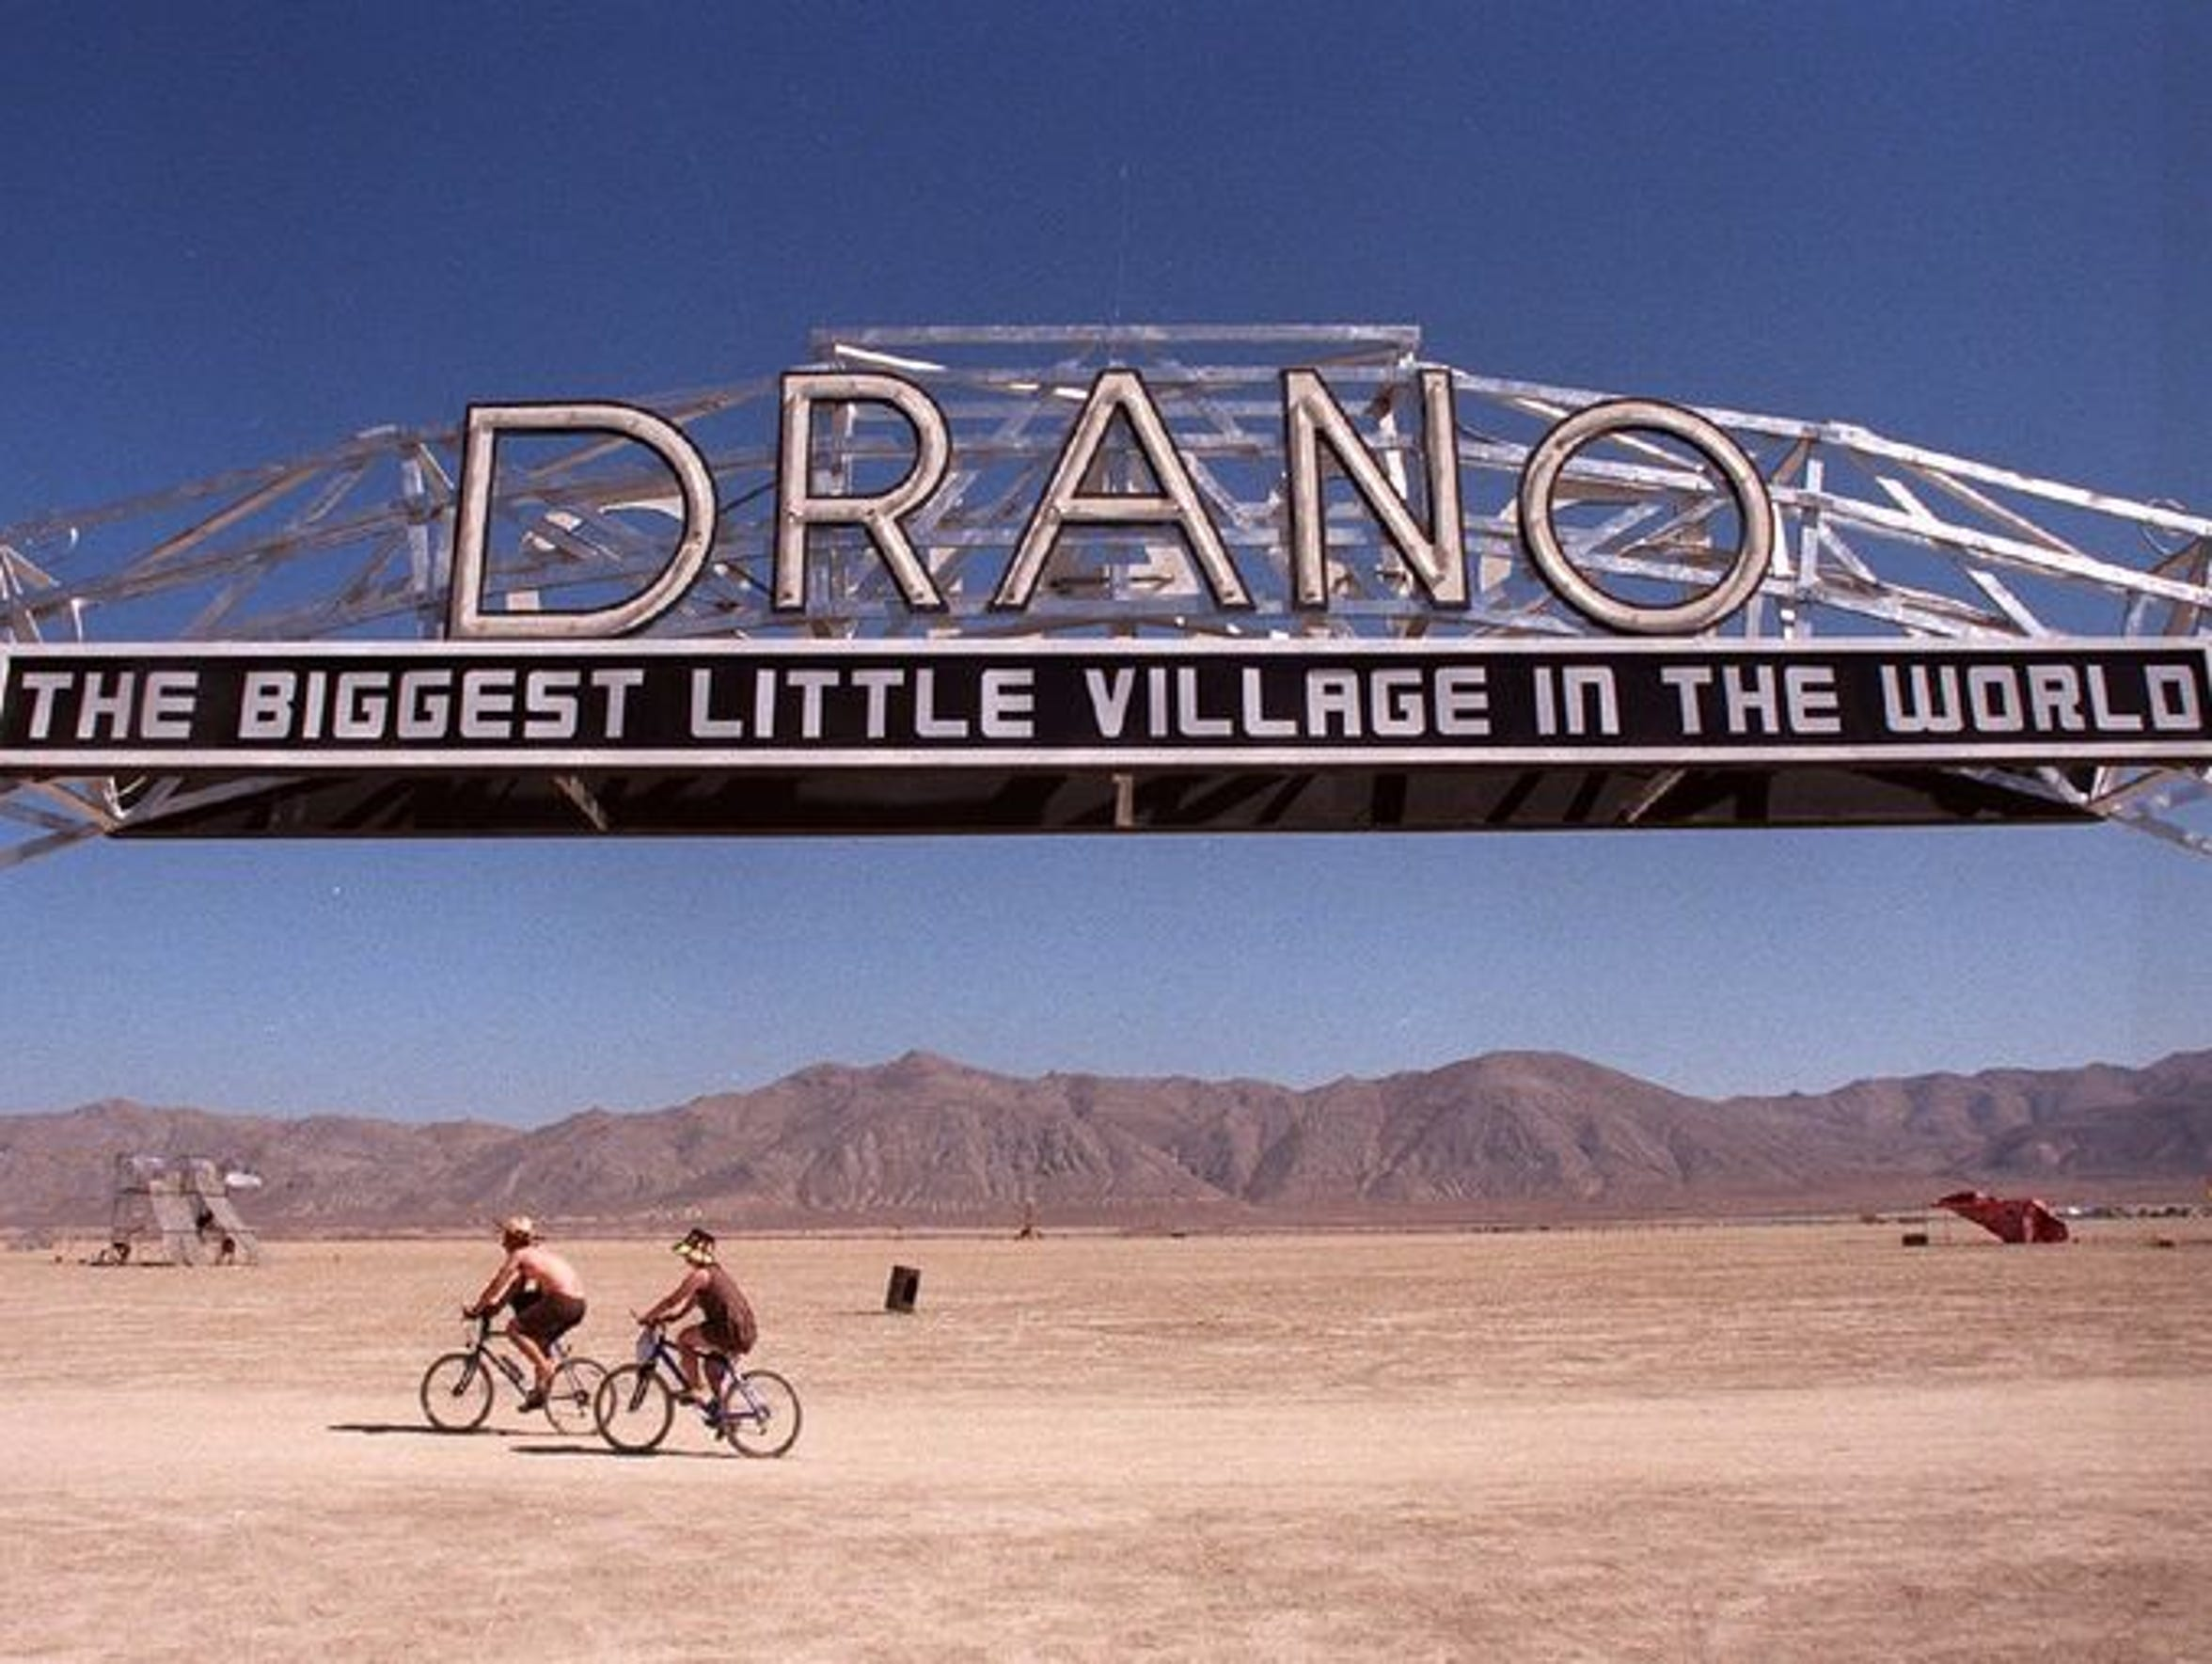 Bicyclists at the 1998 Burning Man event ride beneath